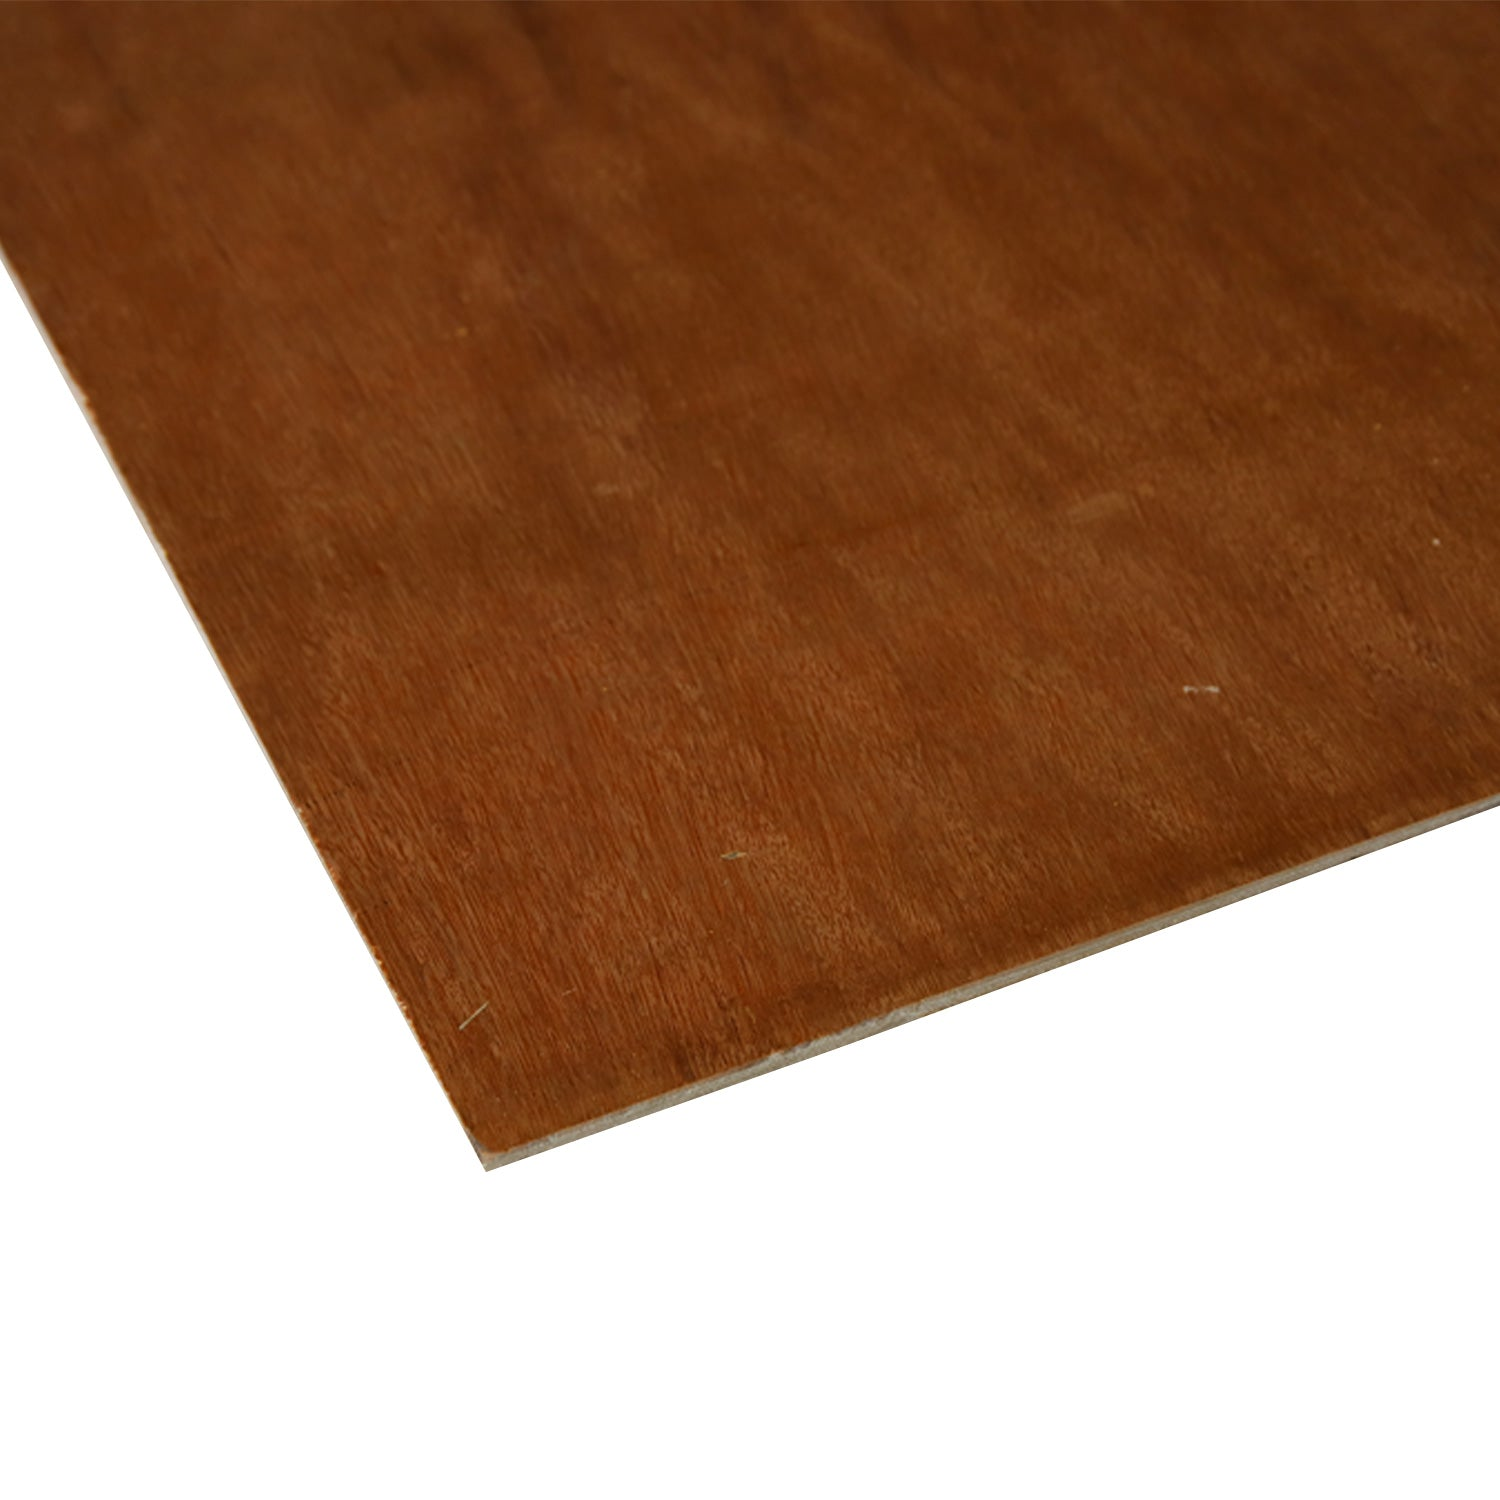 Finish Ply (Hardwood) 8' x 4' x 6mm